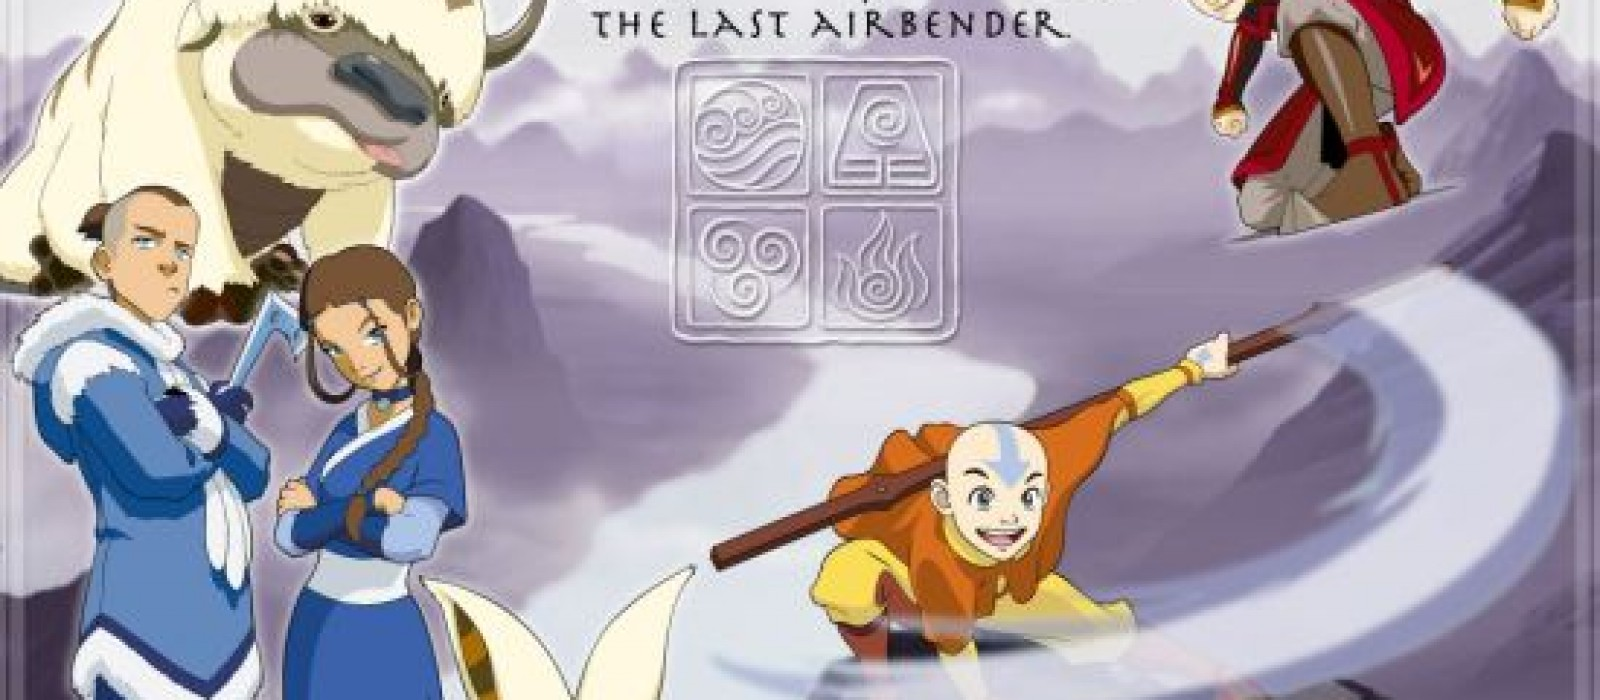 Avatar, the Last Airbender & The legend of Korra